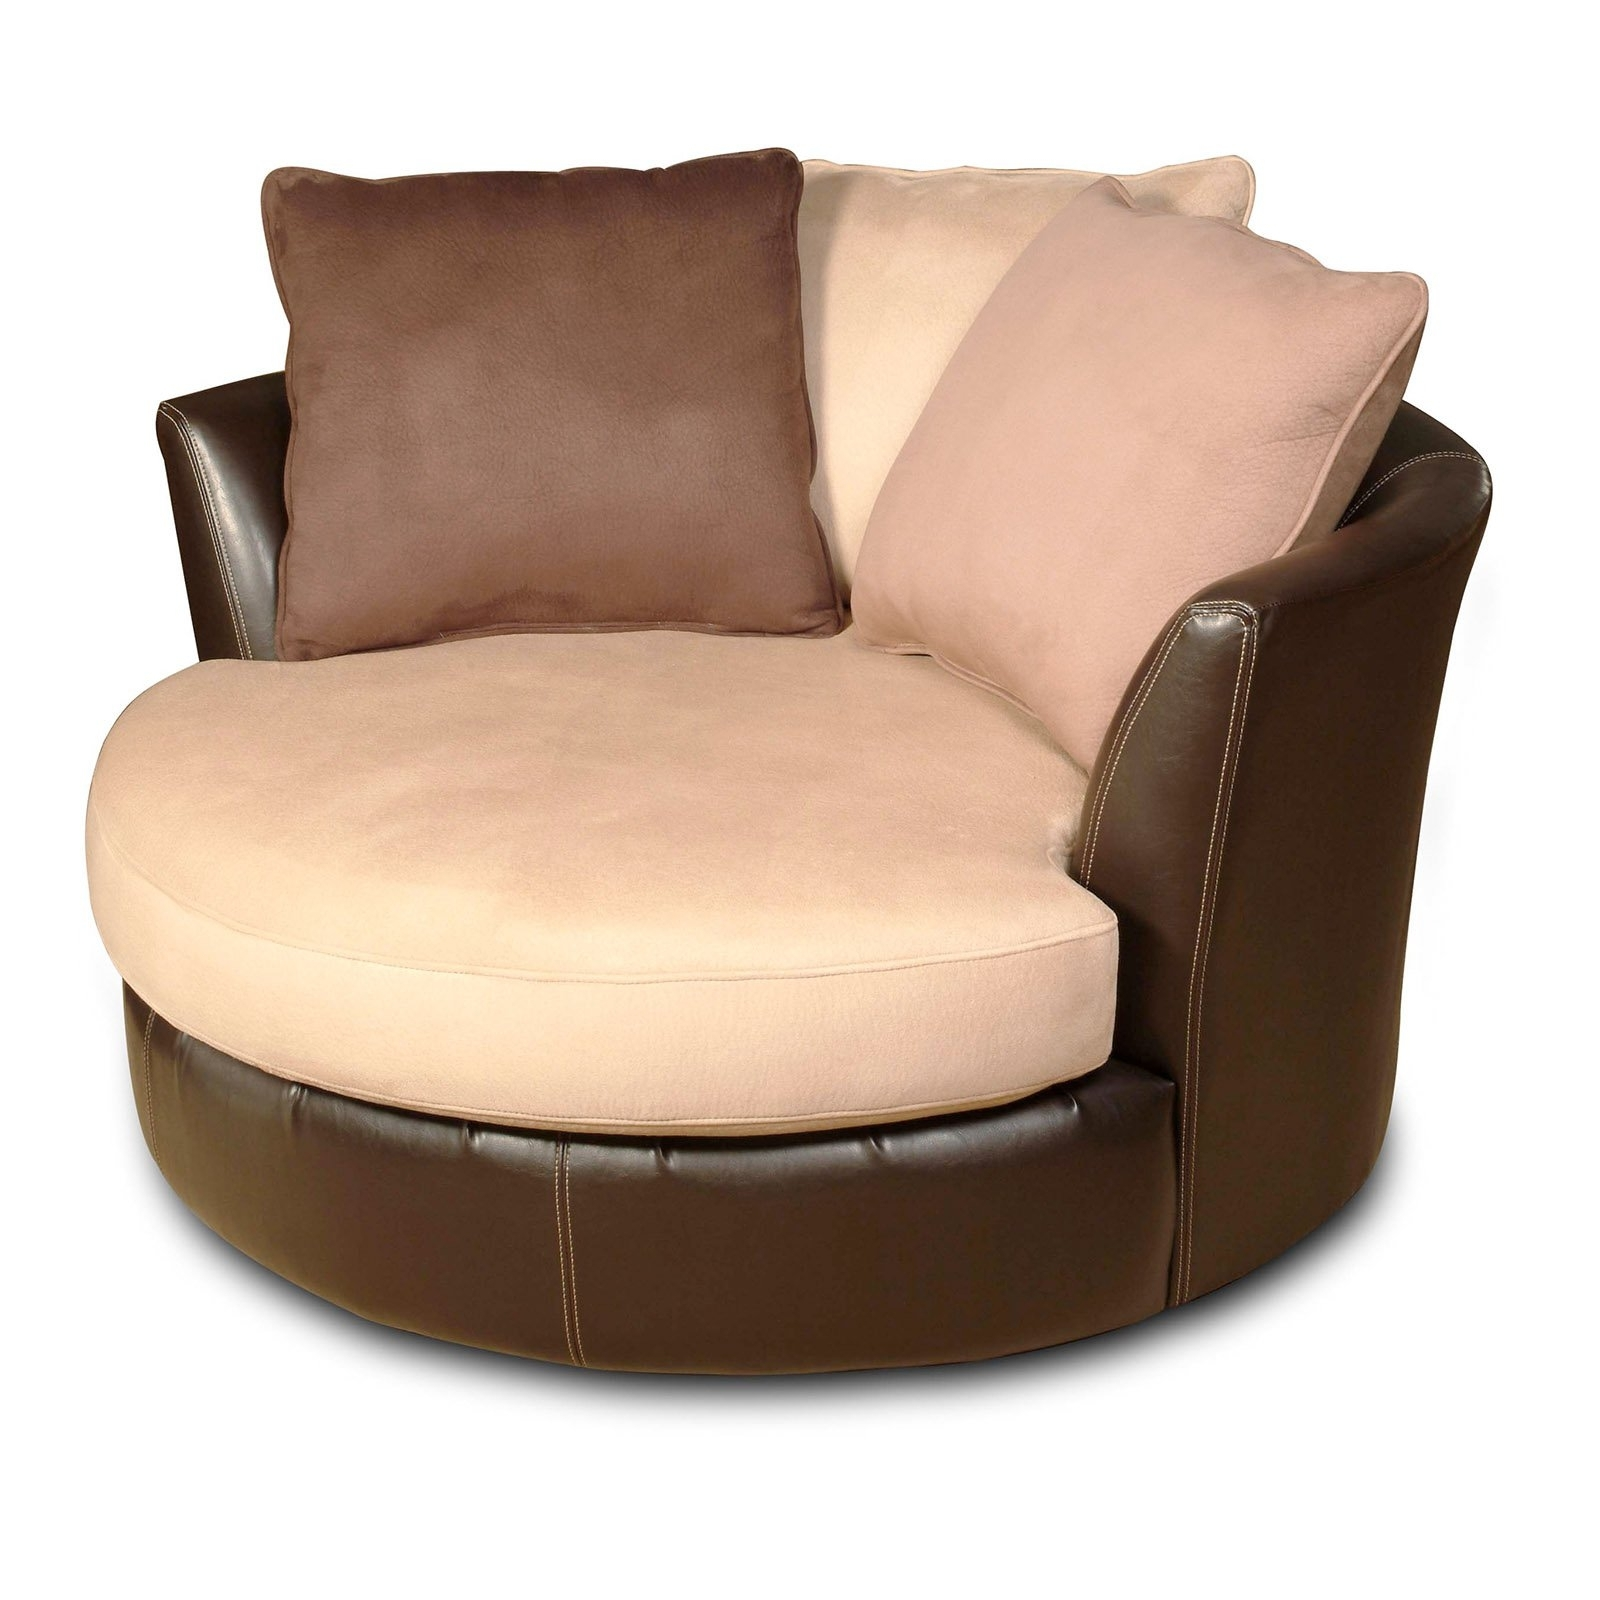 Most Recent Big Round Sofa Chairs With Awesome Round Swivel Sofa Chair Images – Liltigertoo (View 11 of 15)